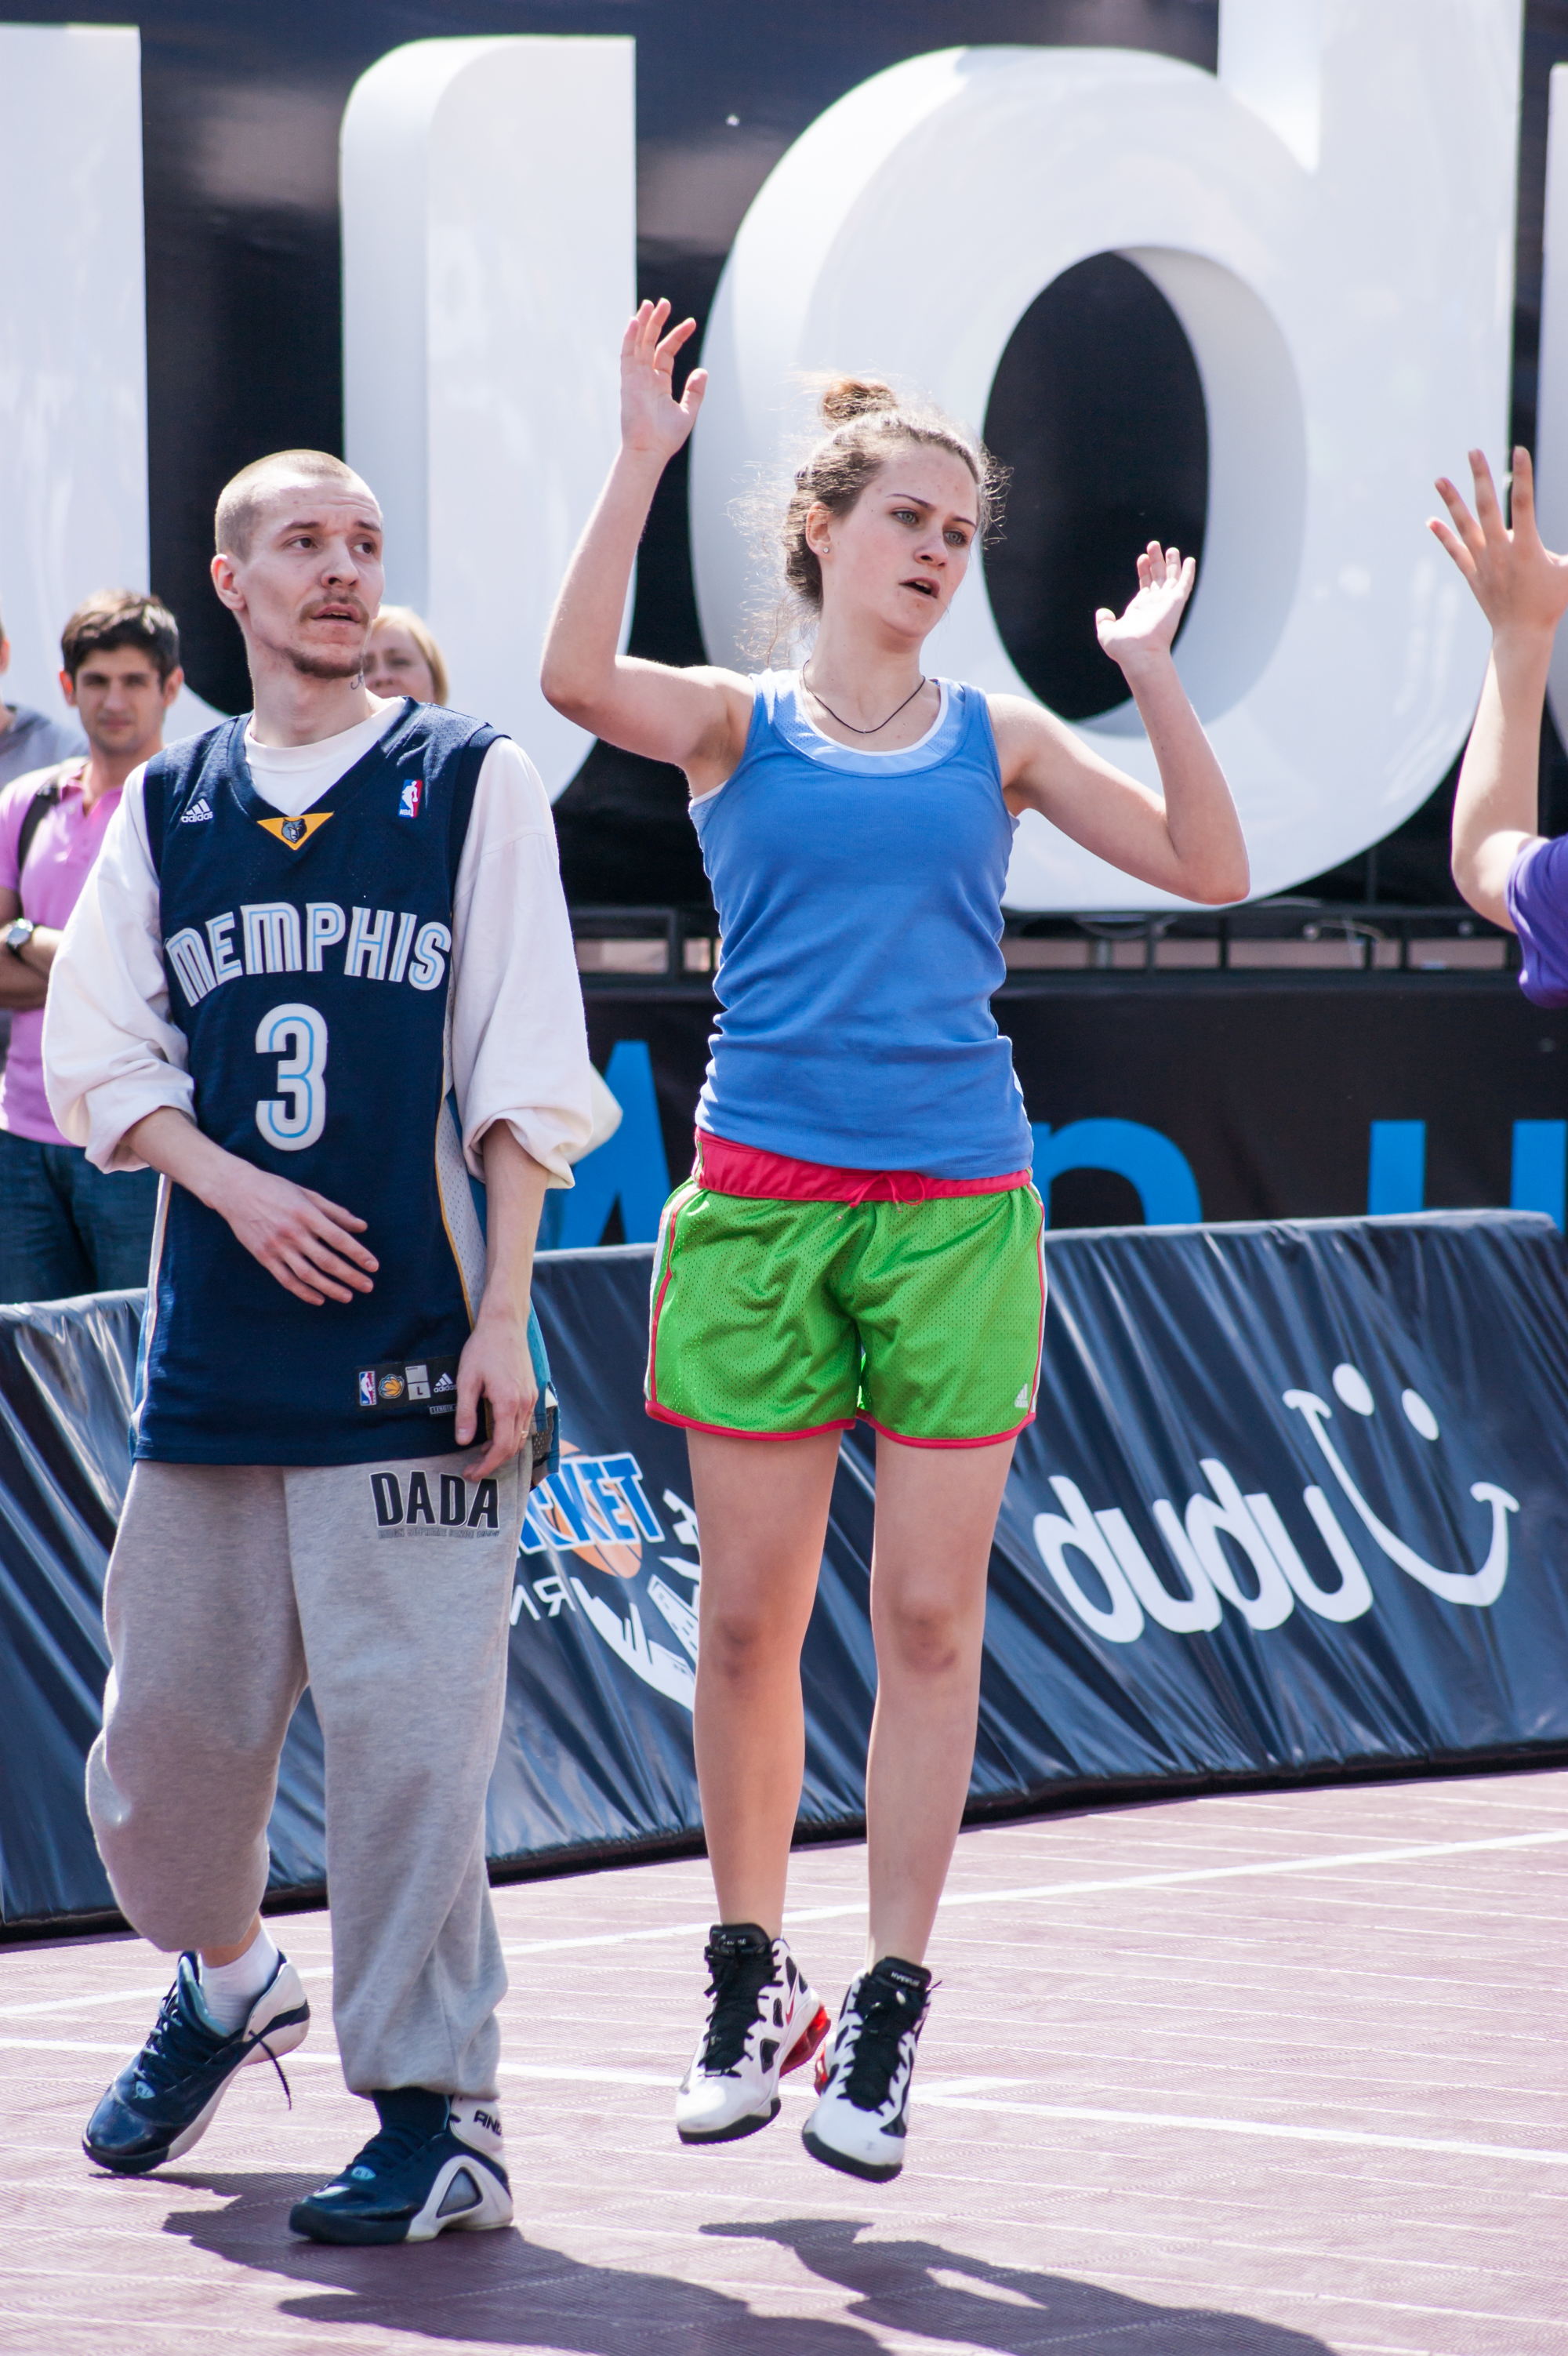 In streetball and play girls. The teams are mixed